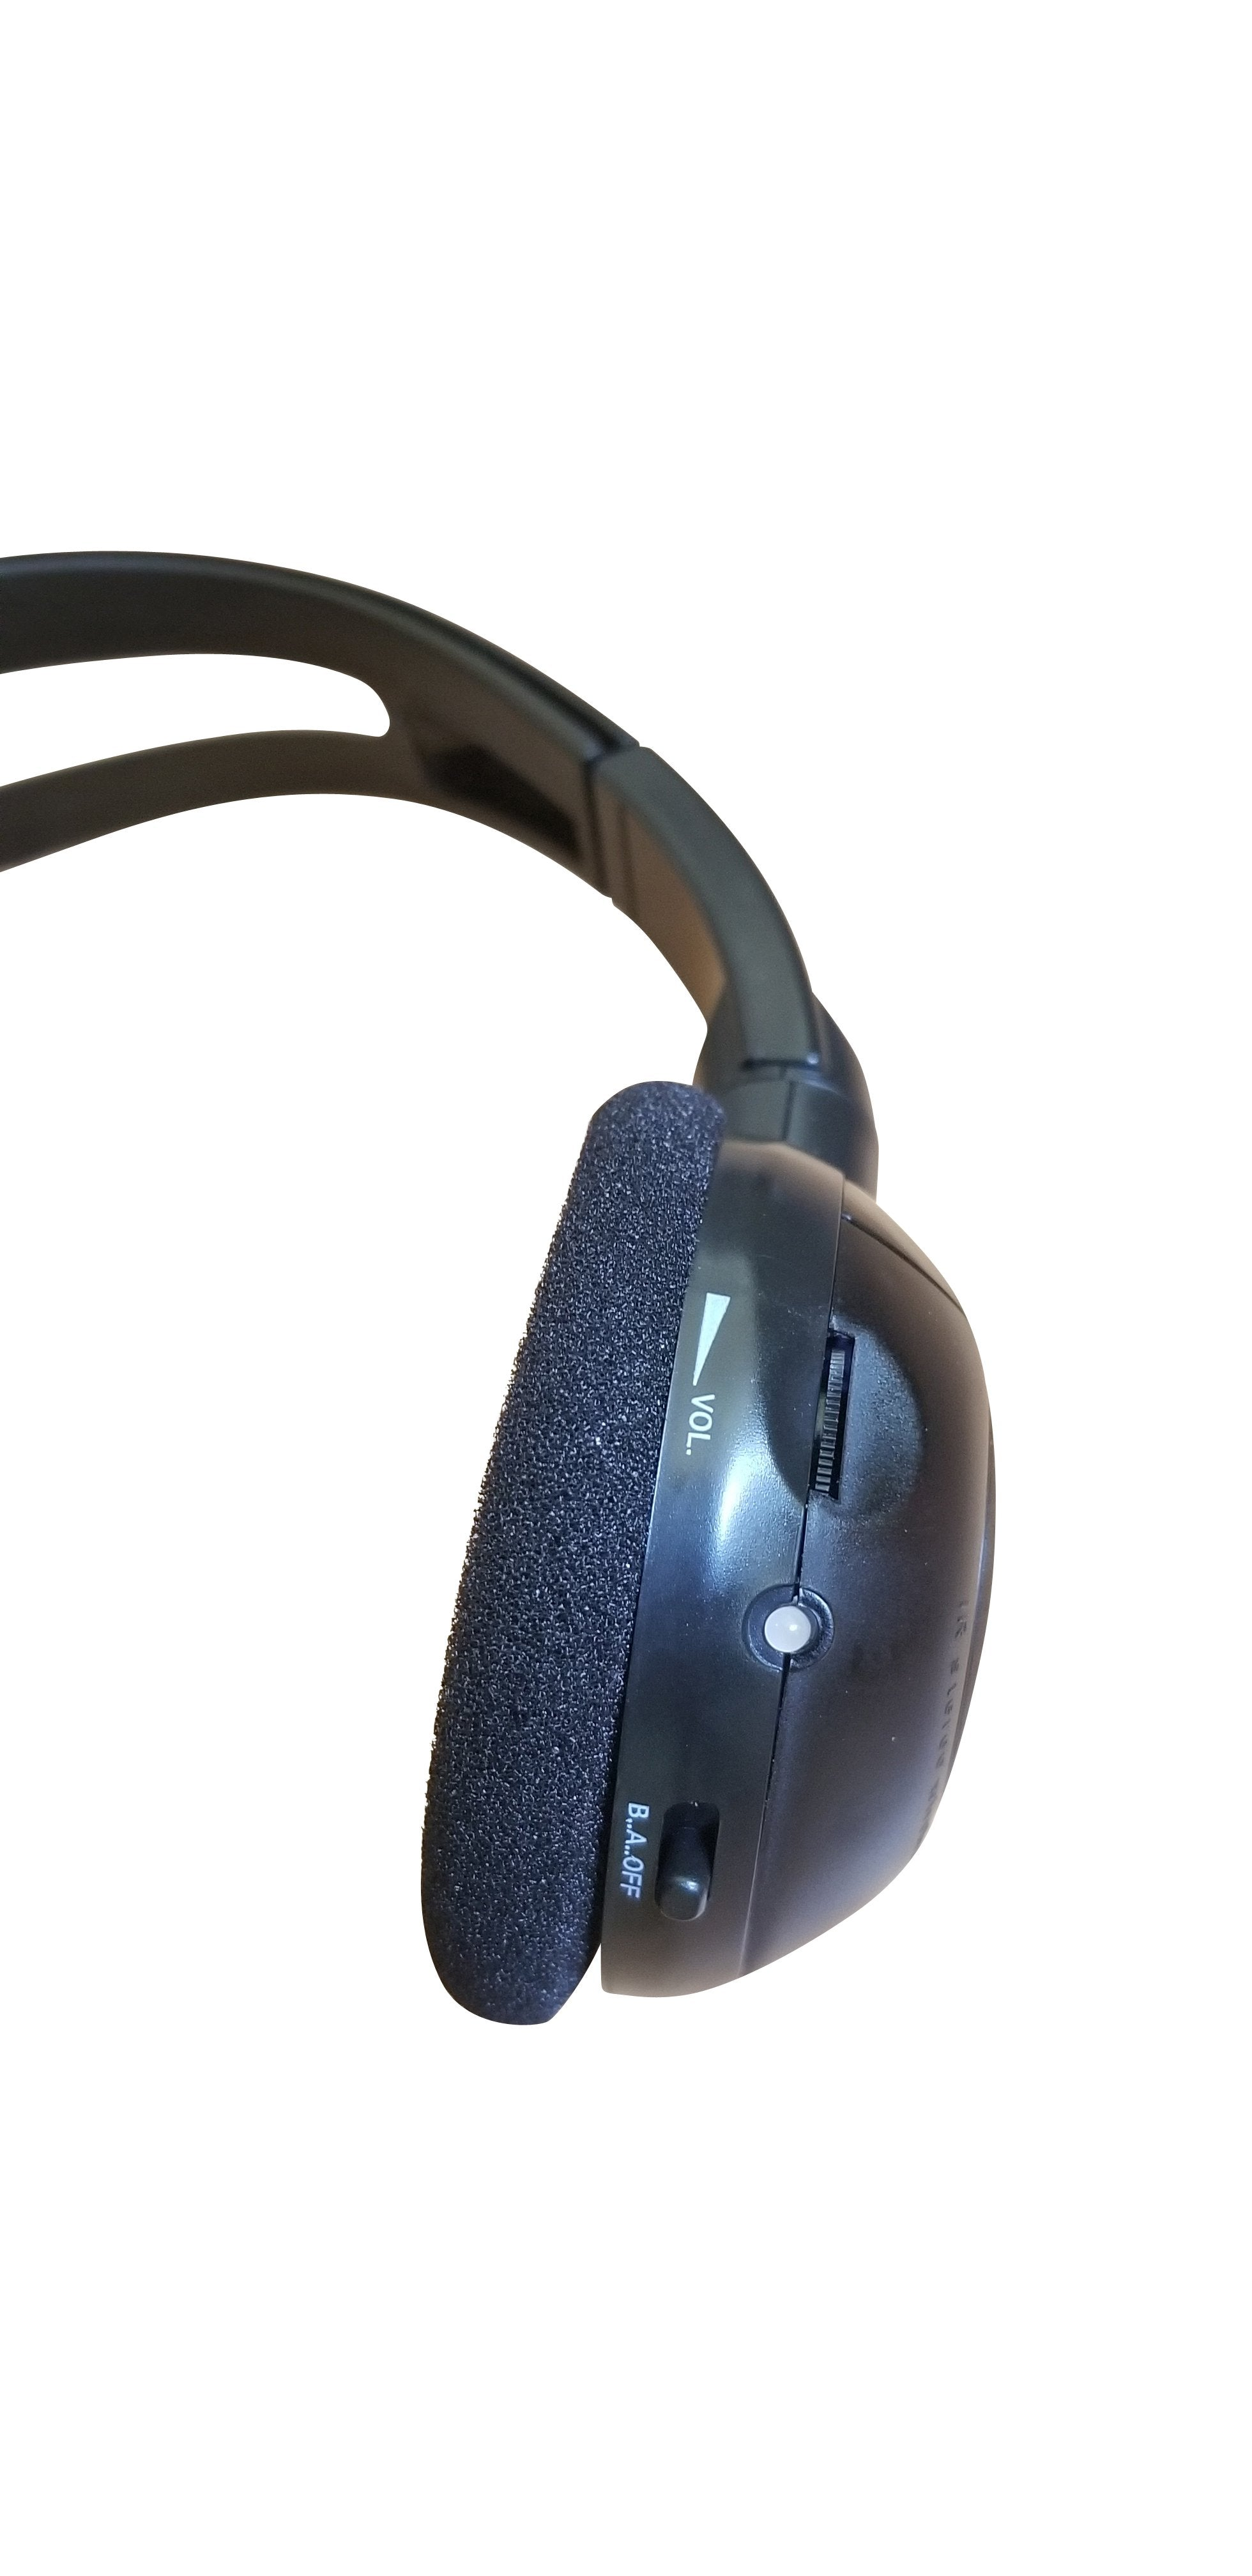 2006 Chevy Avalanche Wireless DVD Headphone